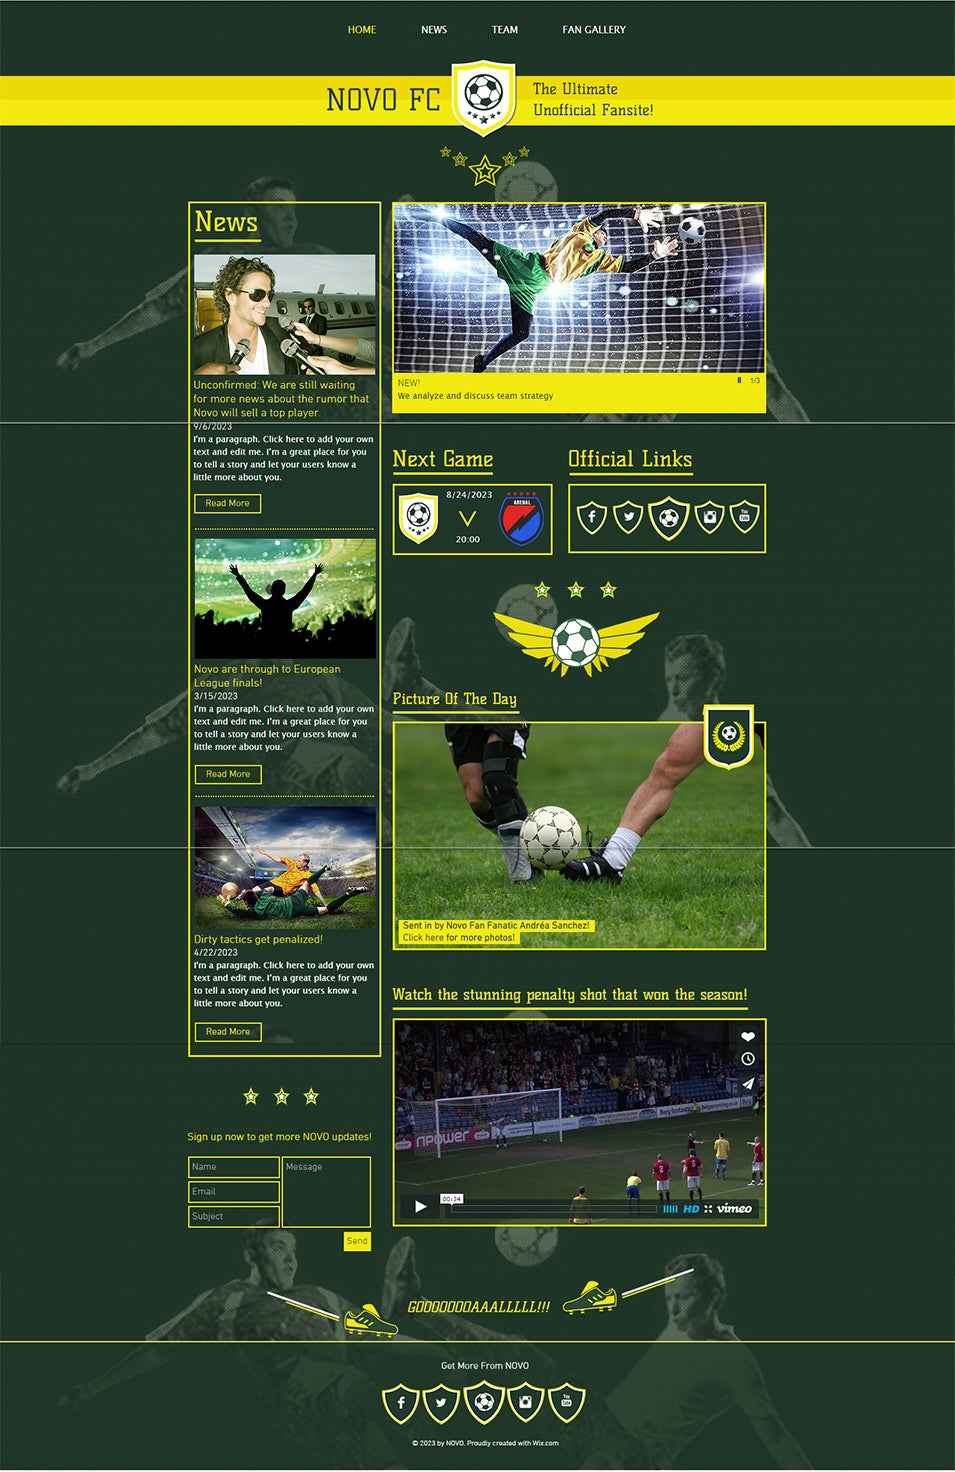 Football Fansite Website Template   WIX1